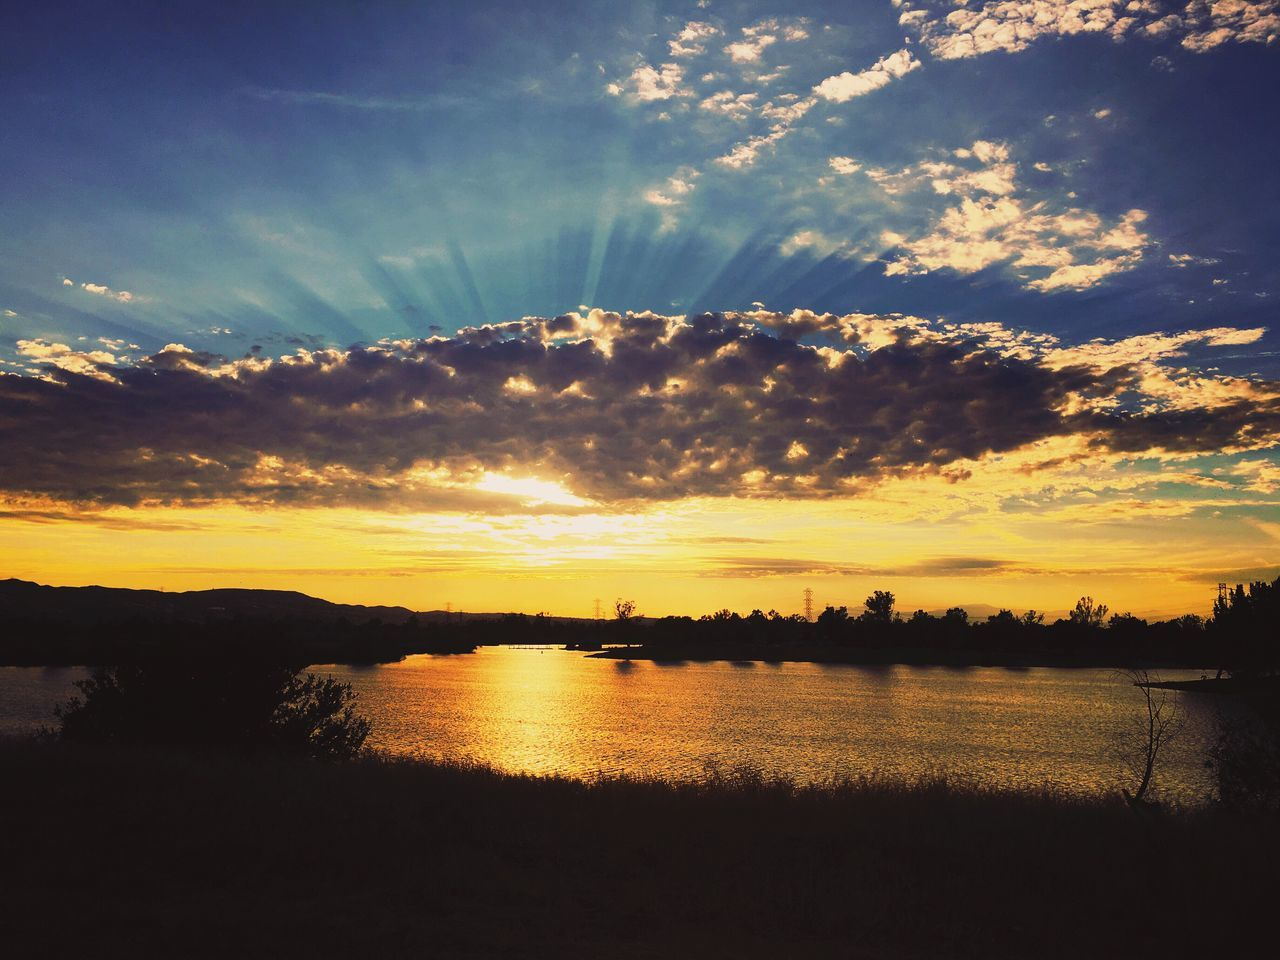 sunset, sky, silhouette, cloud - sky, scenics, water, beauty in nature, nature, river, tranquility, no people, tranquil scene, outdoors, sunlight, reflection, sun, tree, waterfront, day